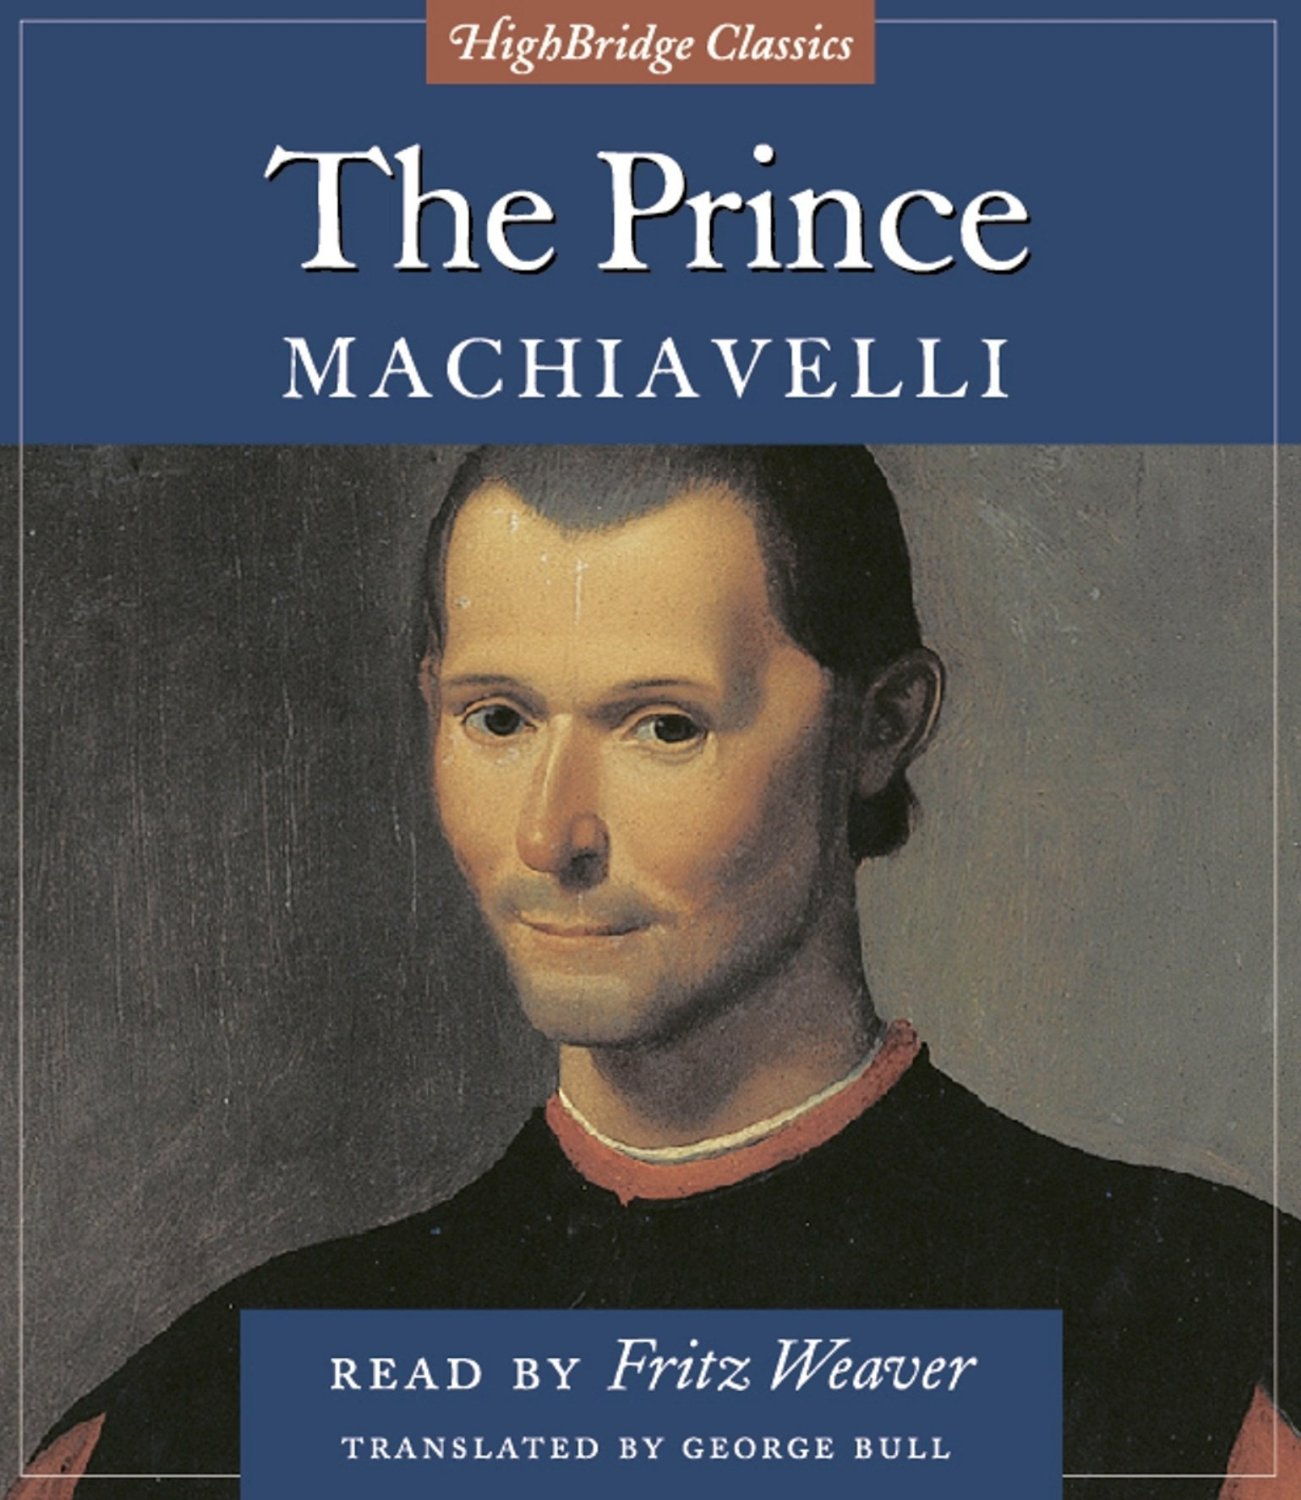 an analysis of the prince by niccolo machiavelli Machiavelli writes during a time when italy had not been formed yet only a loosely connected group of powerful city-states with constantly changing rulers existed.